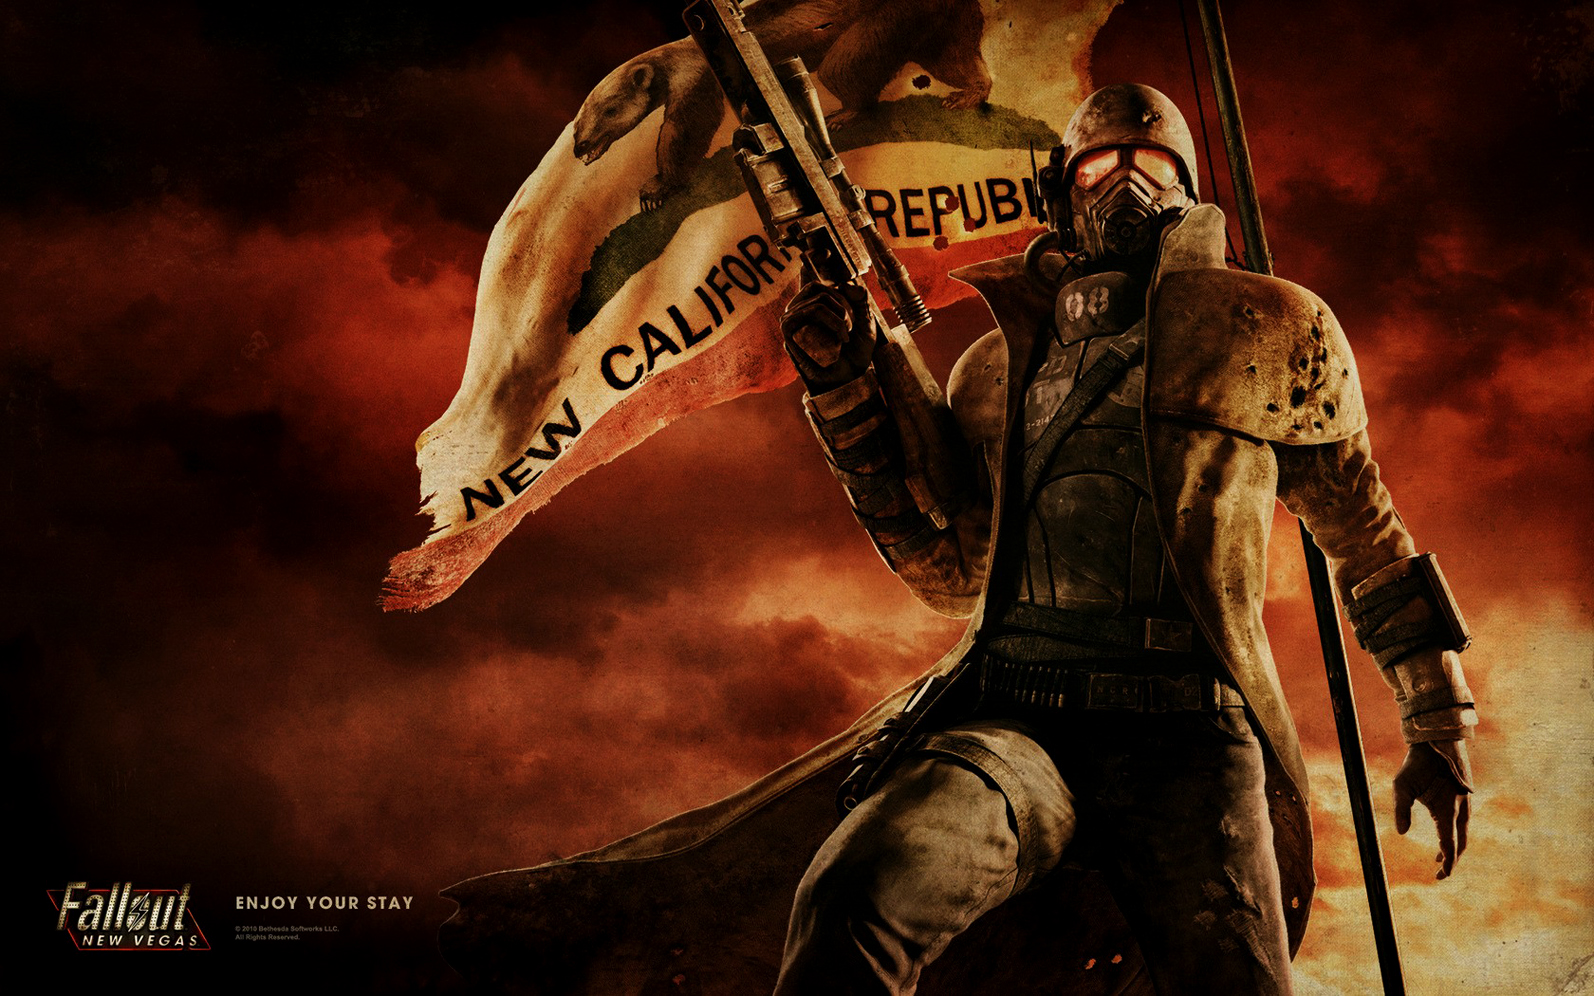 15 Best Sniper Wallpapers from Video Gameswallpapers screensavers 1594x996